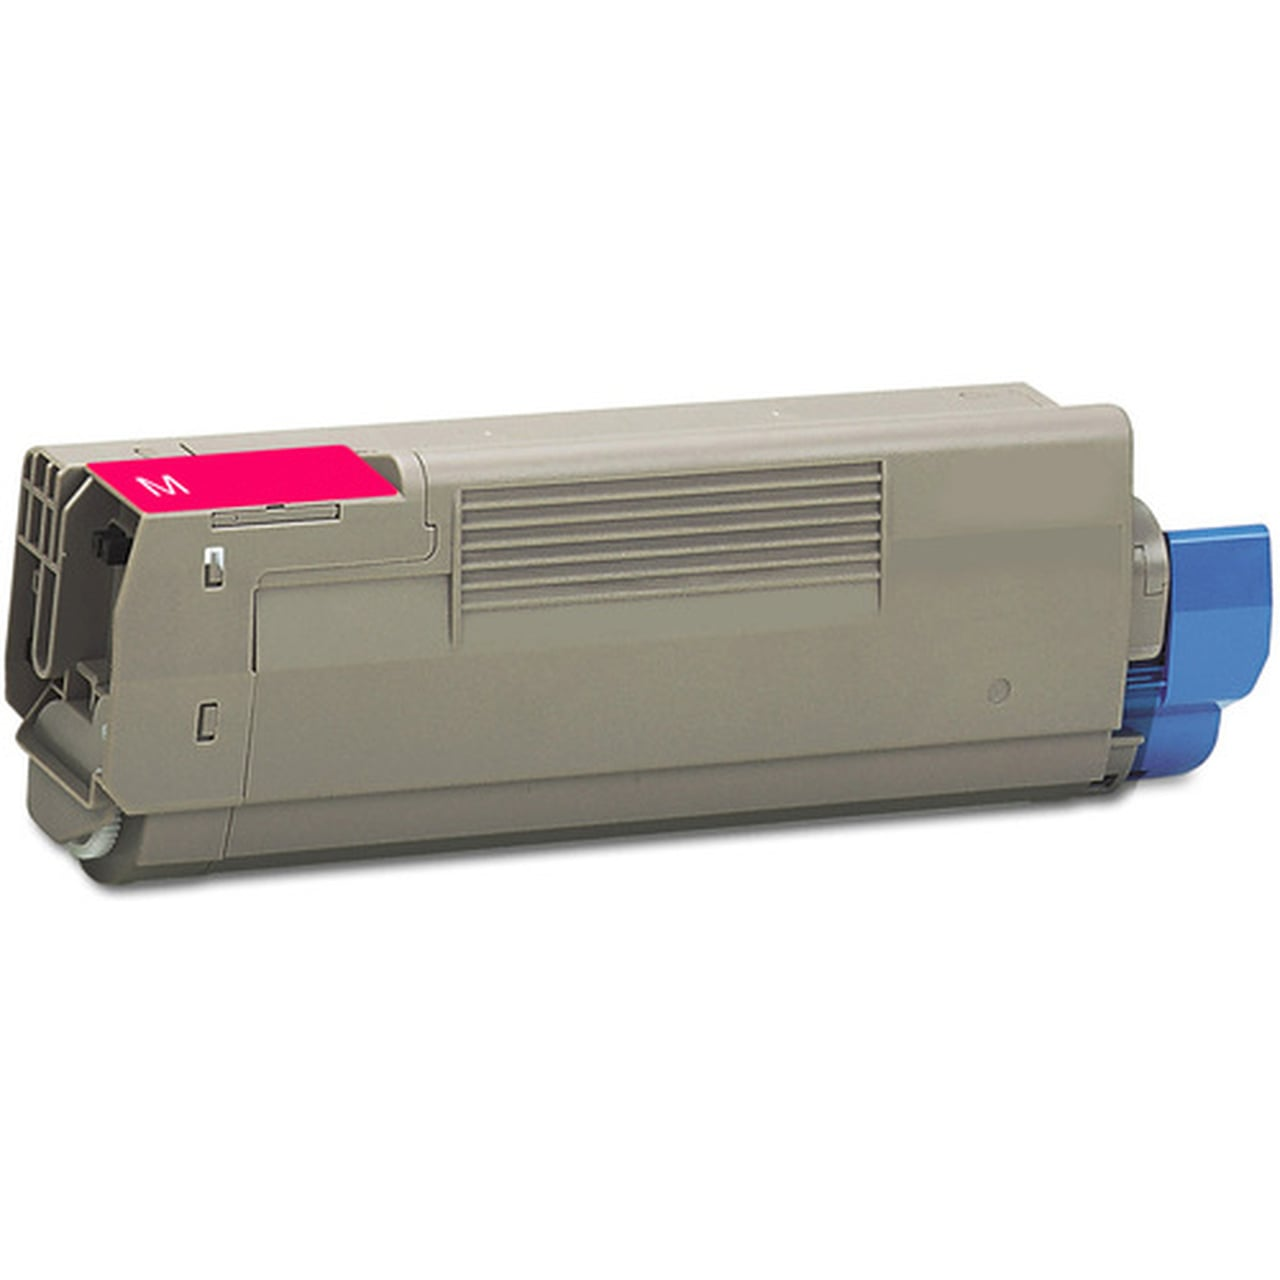 43324402 Toner Cartridge - Okidata New Compatible  (Magenta)